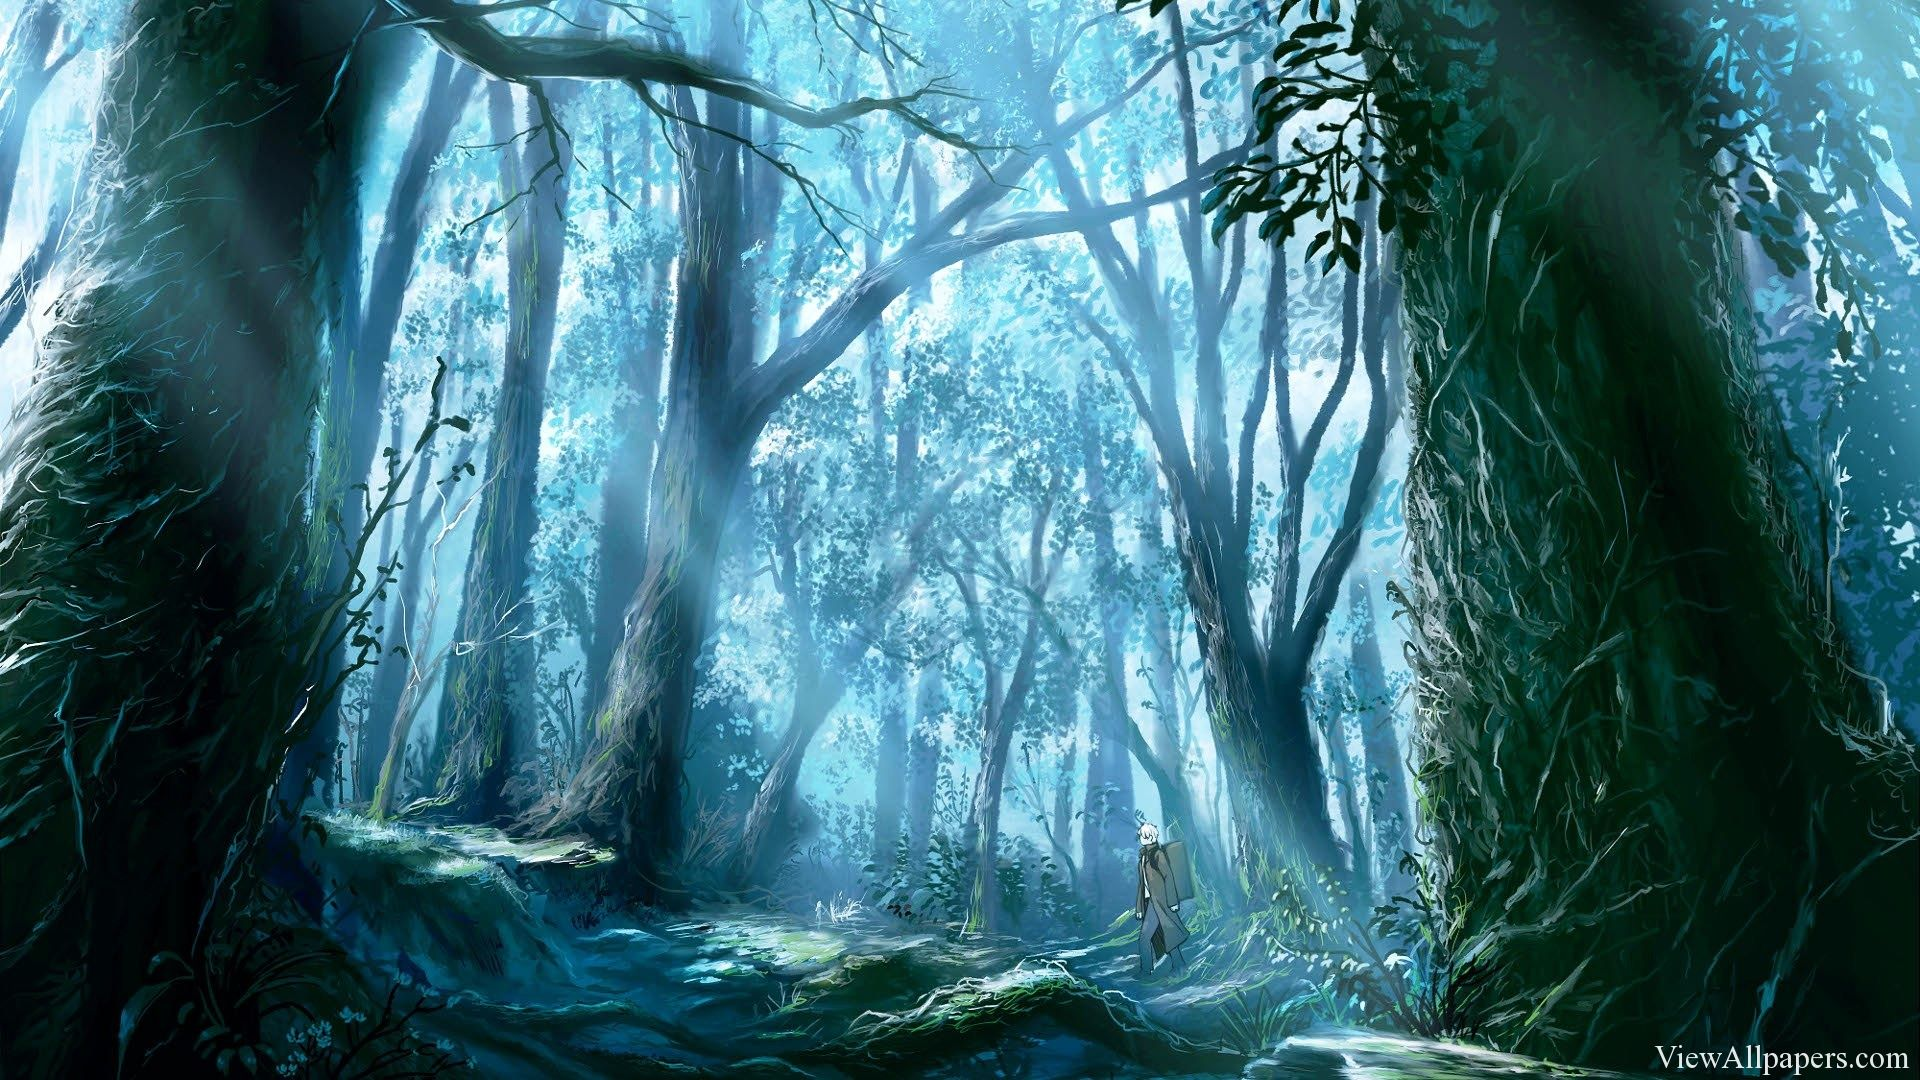 Anime Jungle Hd Resolution Wallpaper Free Download Anime Jungle Wallpaper For Pc Computers Desktop Background Smartphones And Tablet